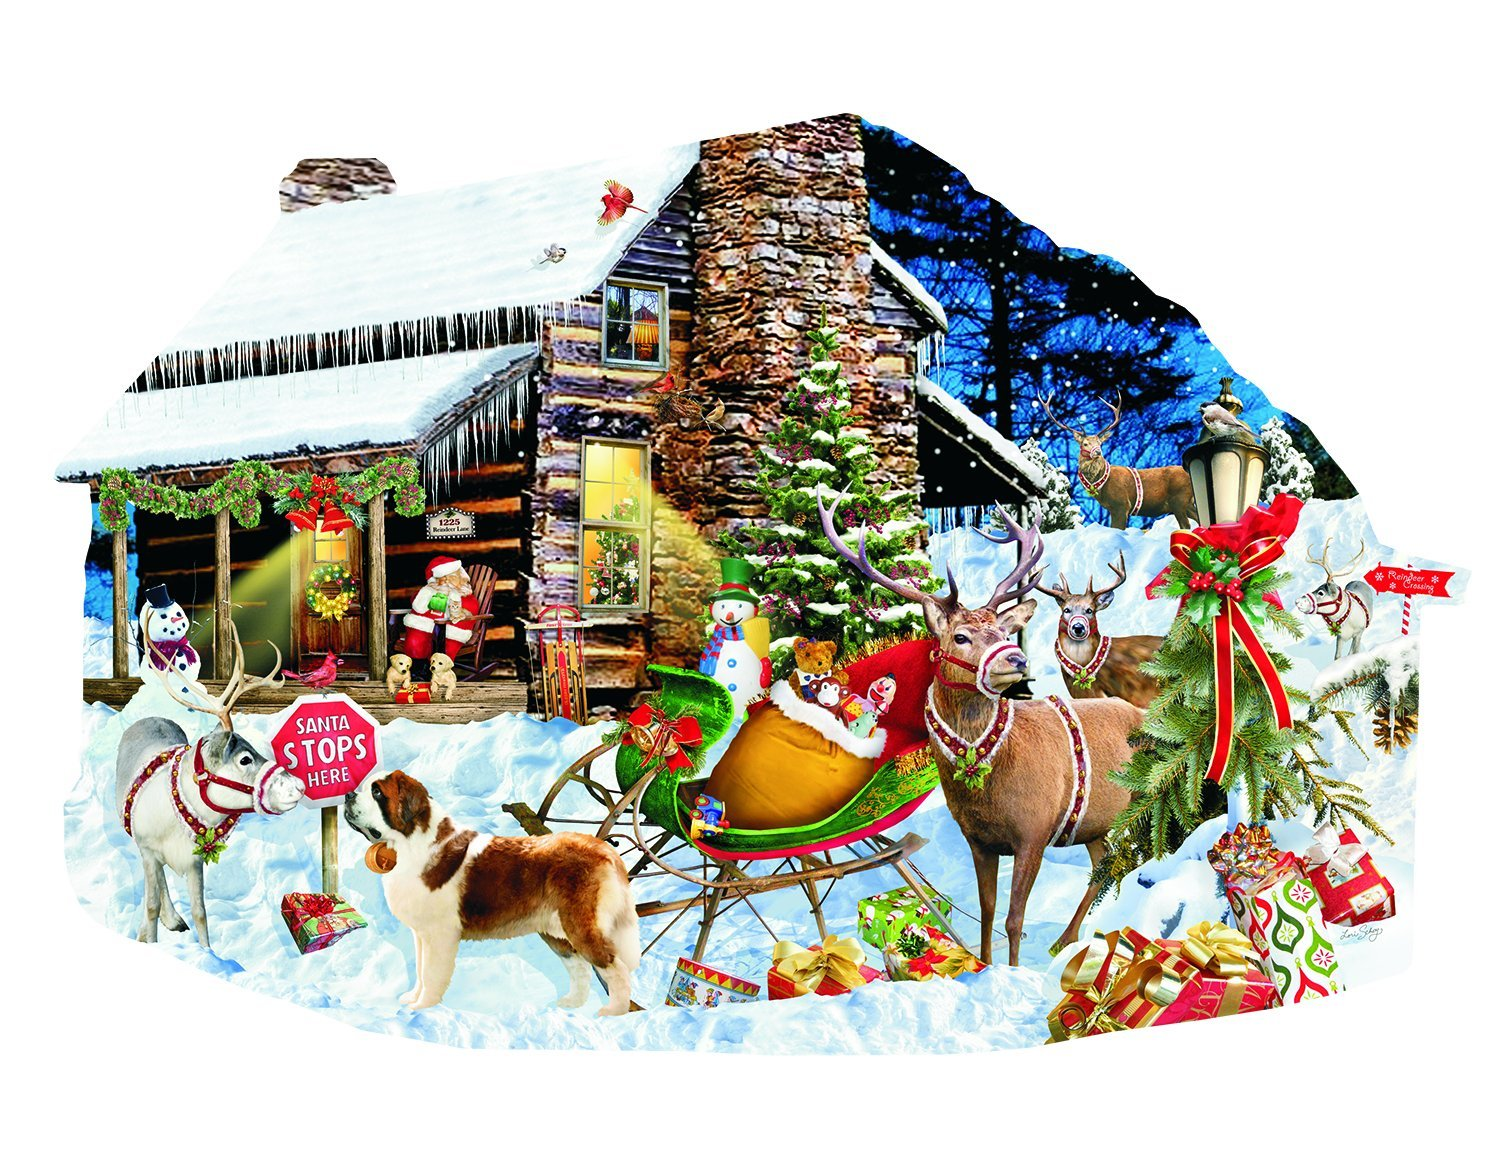 Santa's Rest Stop - Christmas Theme Puzzle - 1000 Pc Shaped Jigsaw Puzzle by SunsOut